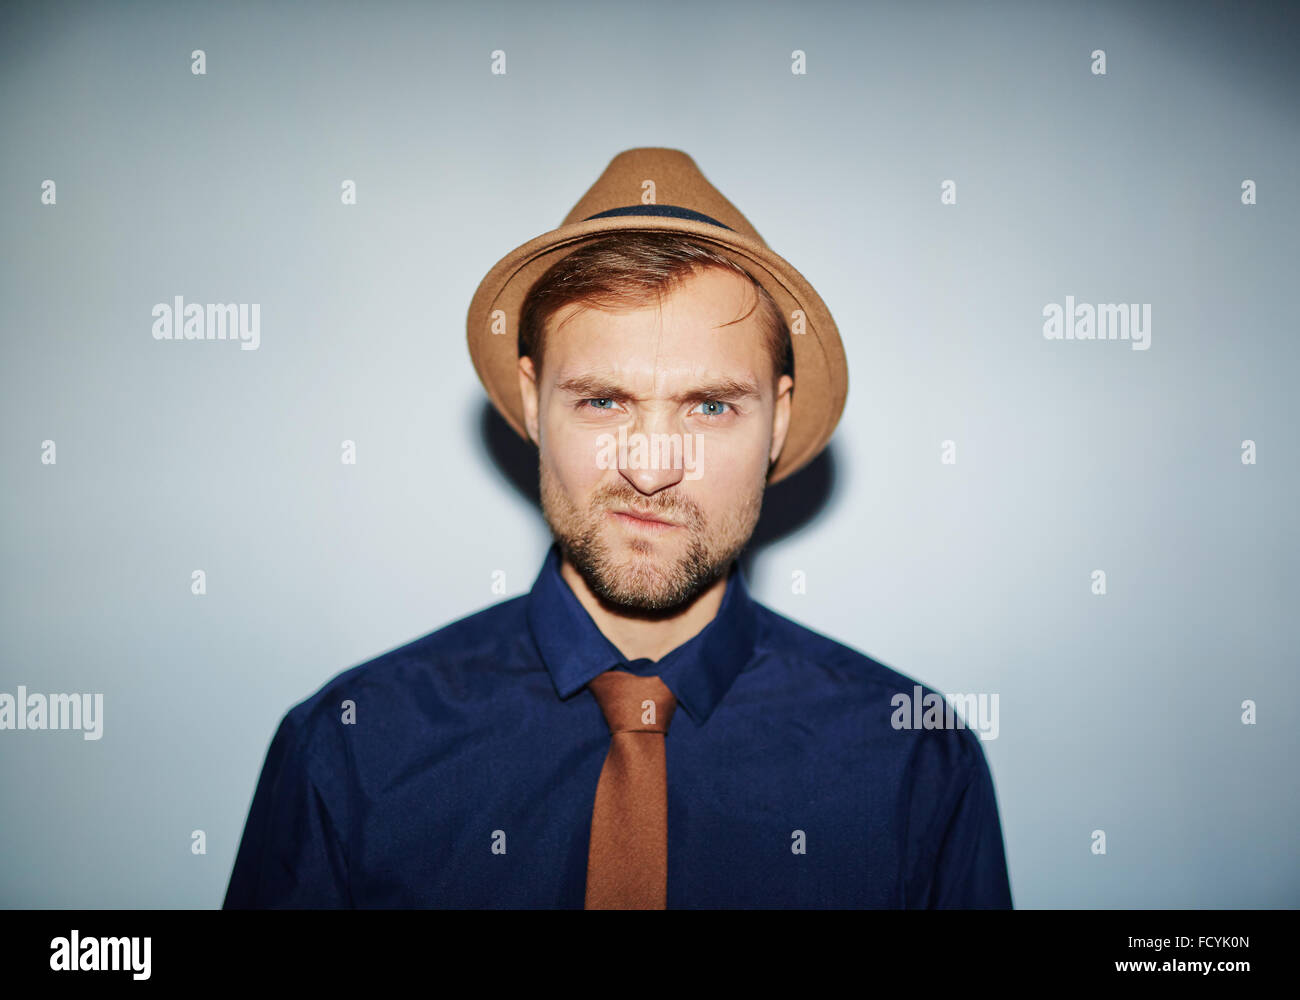 Confused or annoyed guy in hat, tie and shirt looking at camera - Stock Image